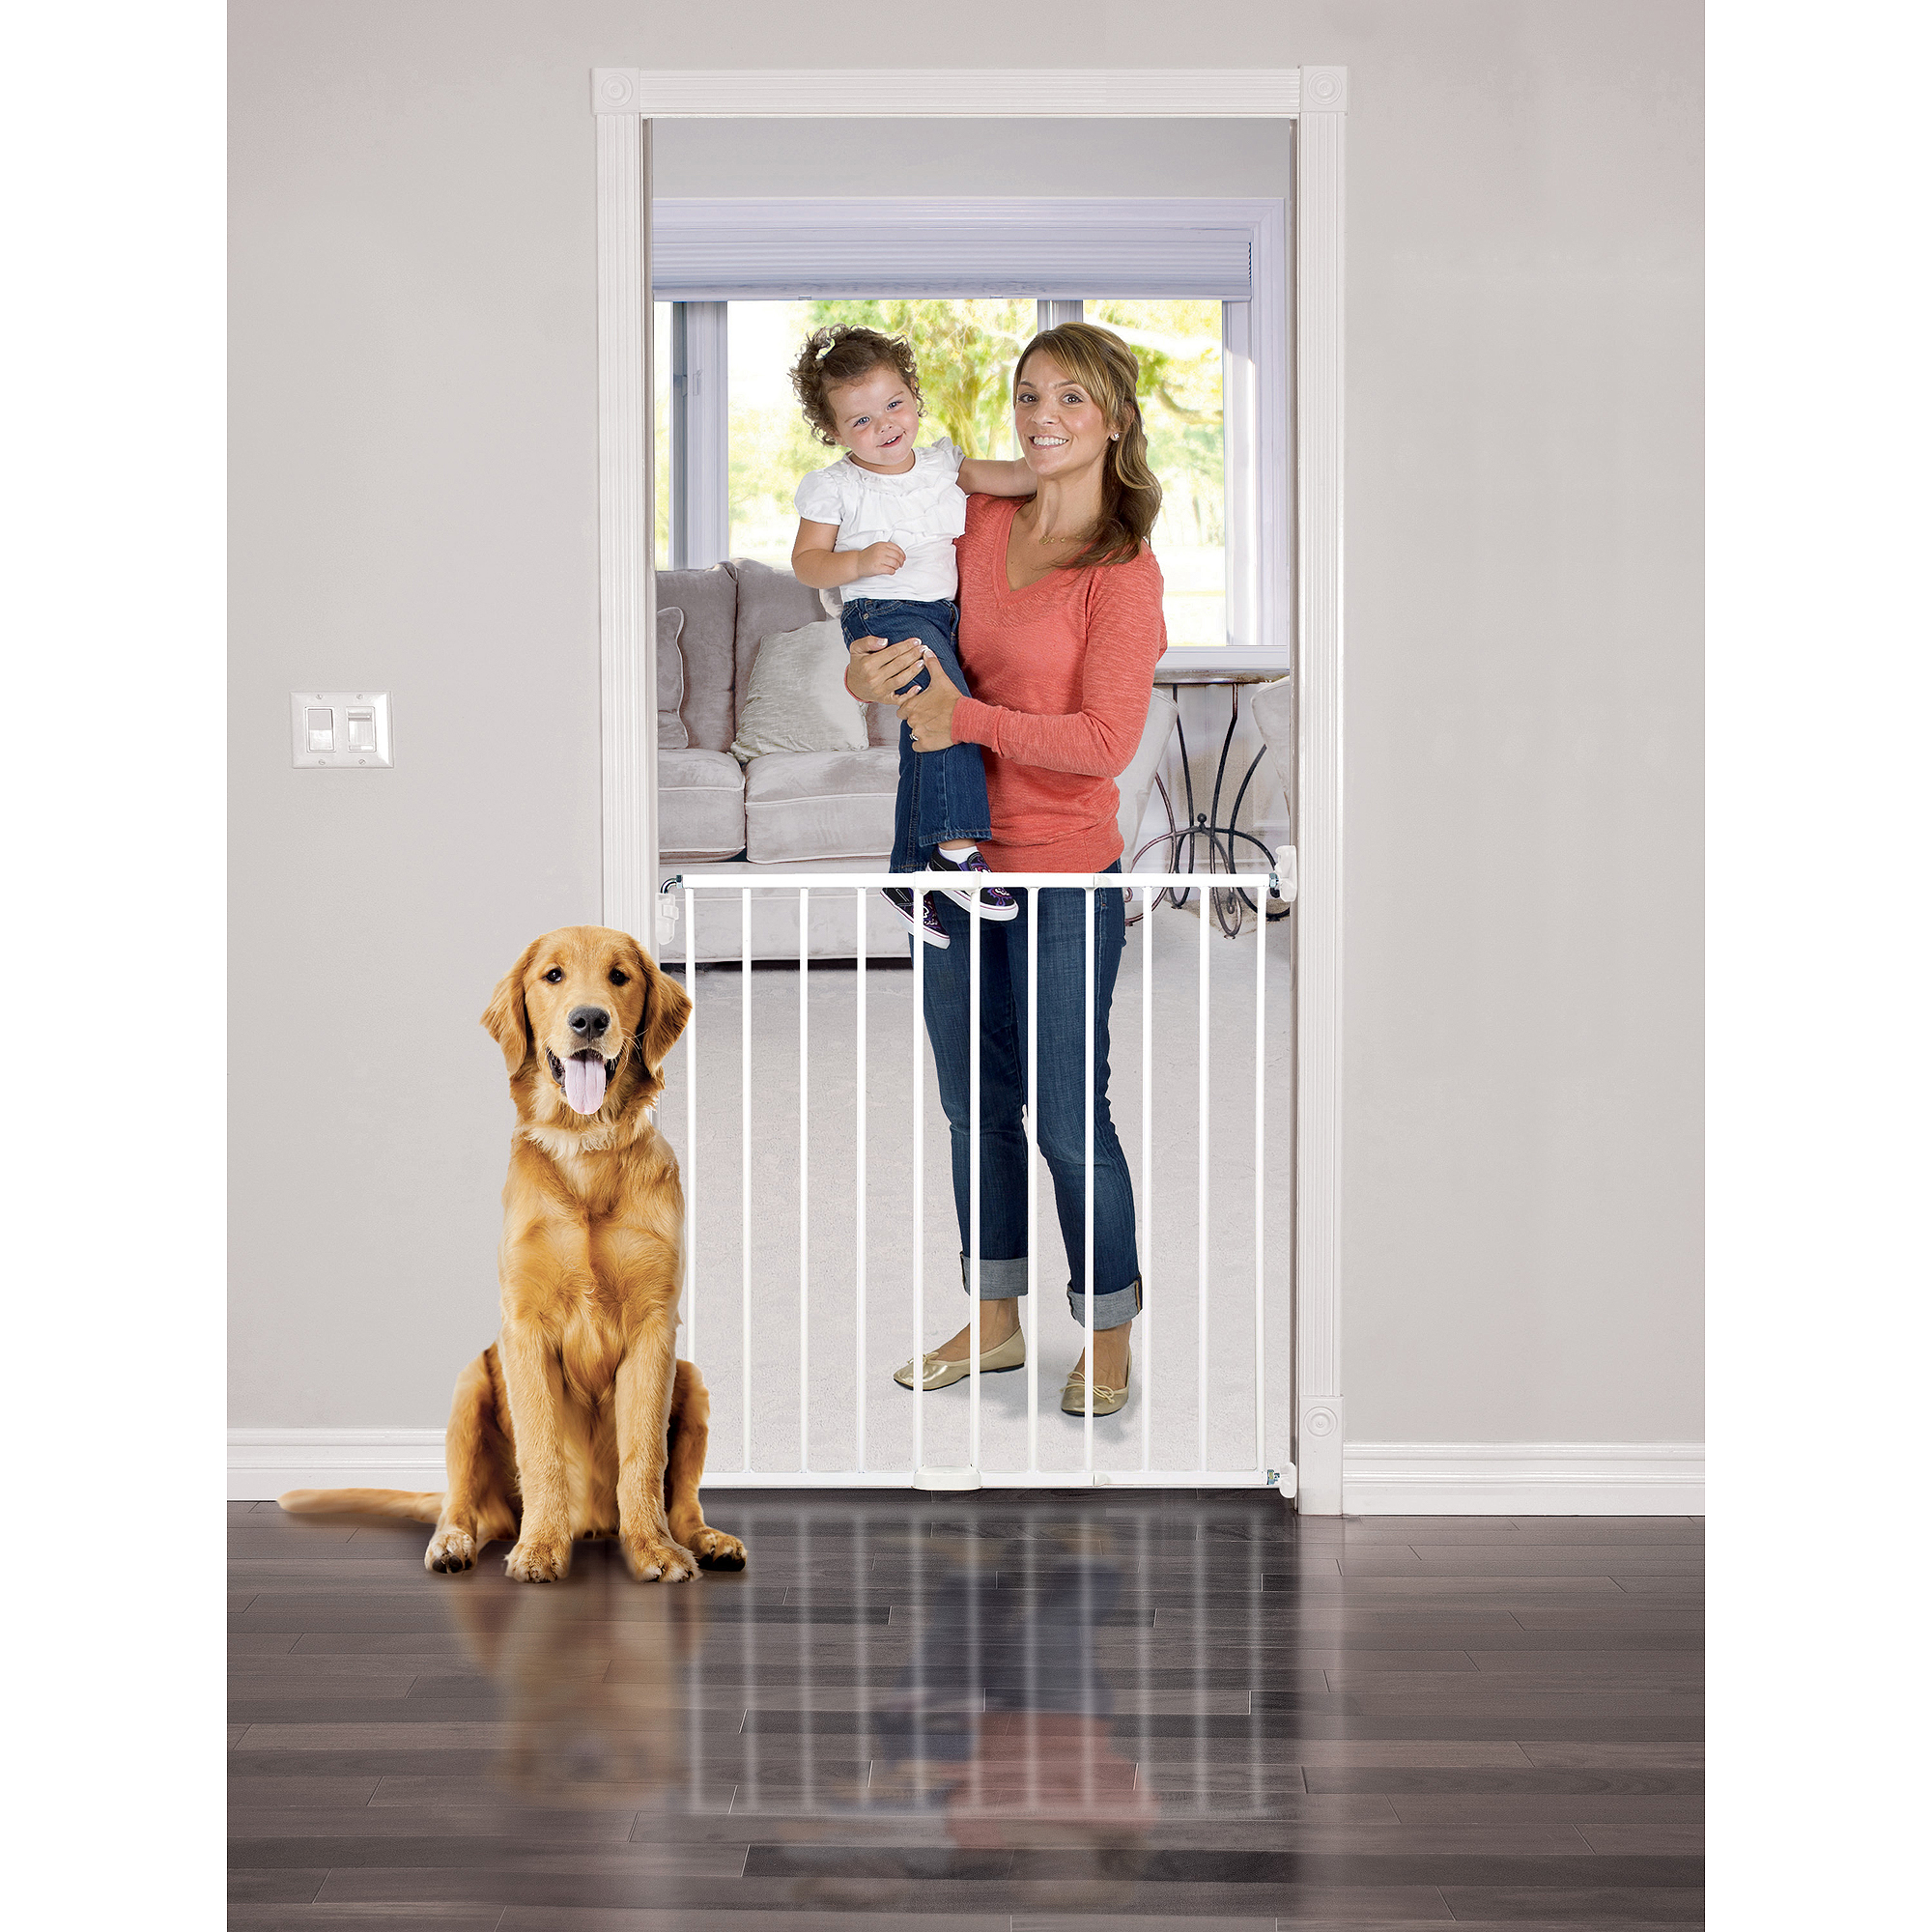 Baby Trend Tall Extending Metal Gate